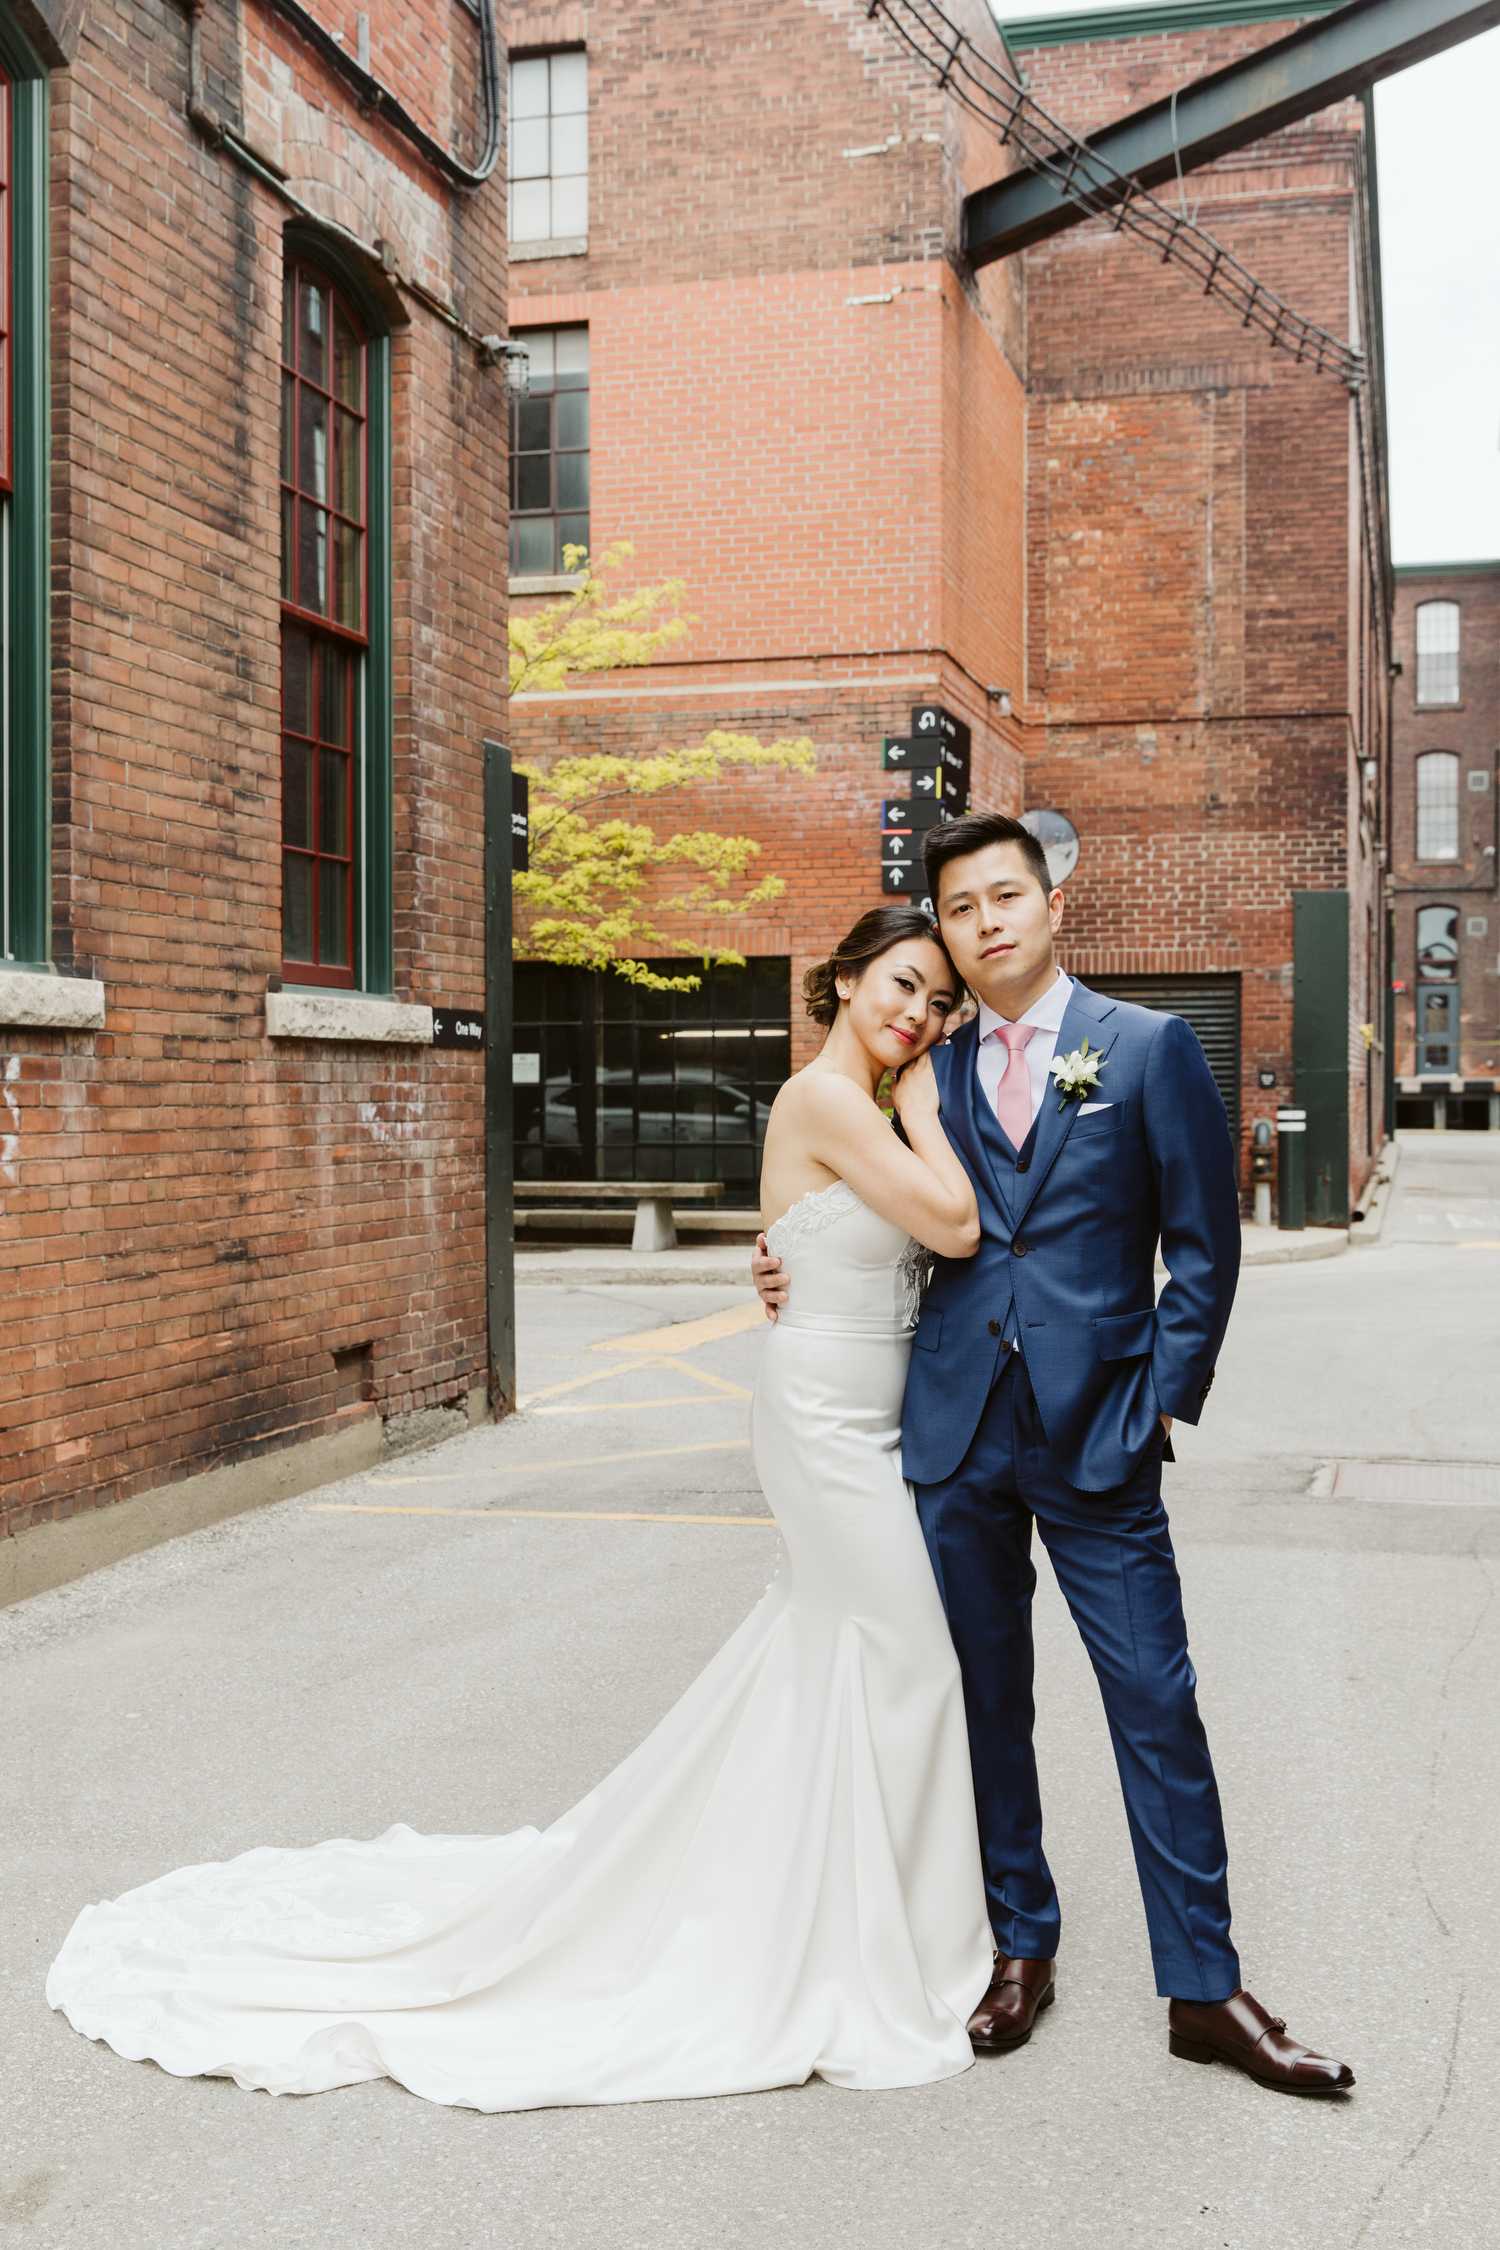 Toronto loft wedding photography by Magnolia Studios